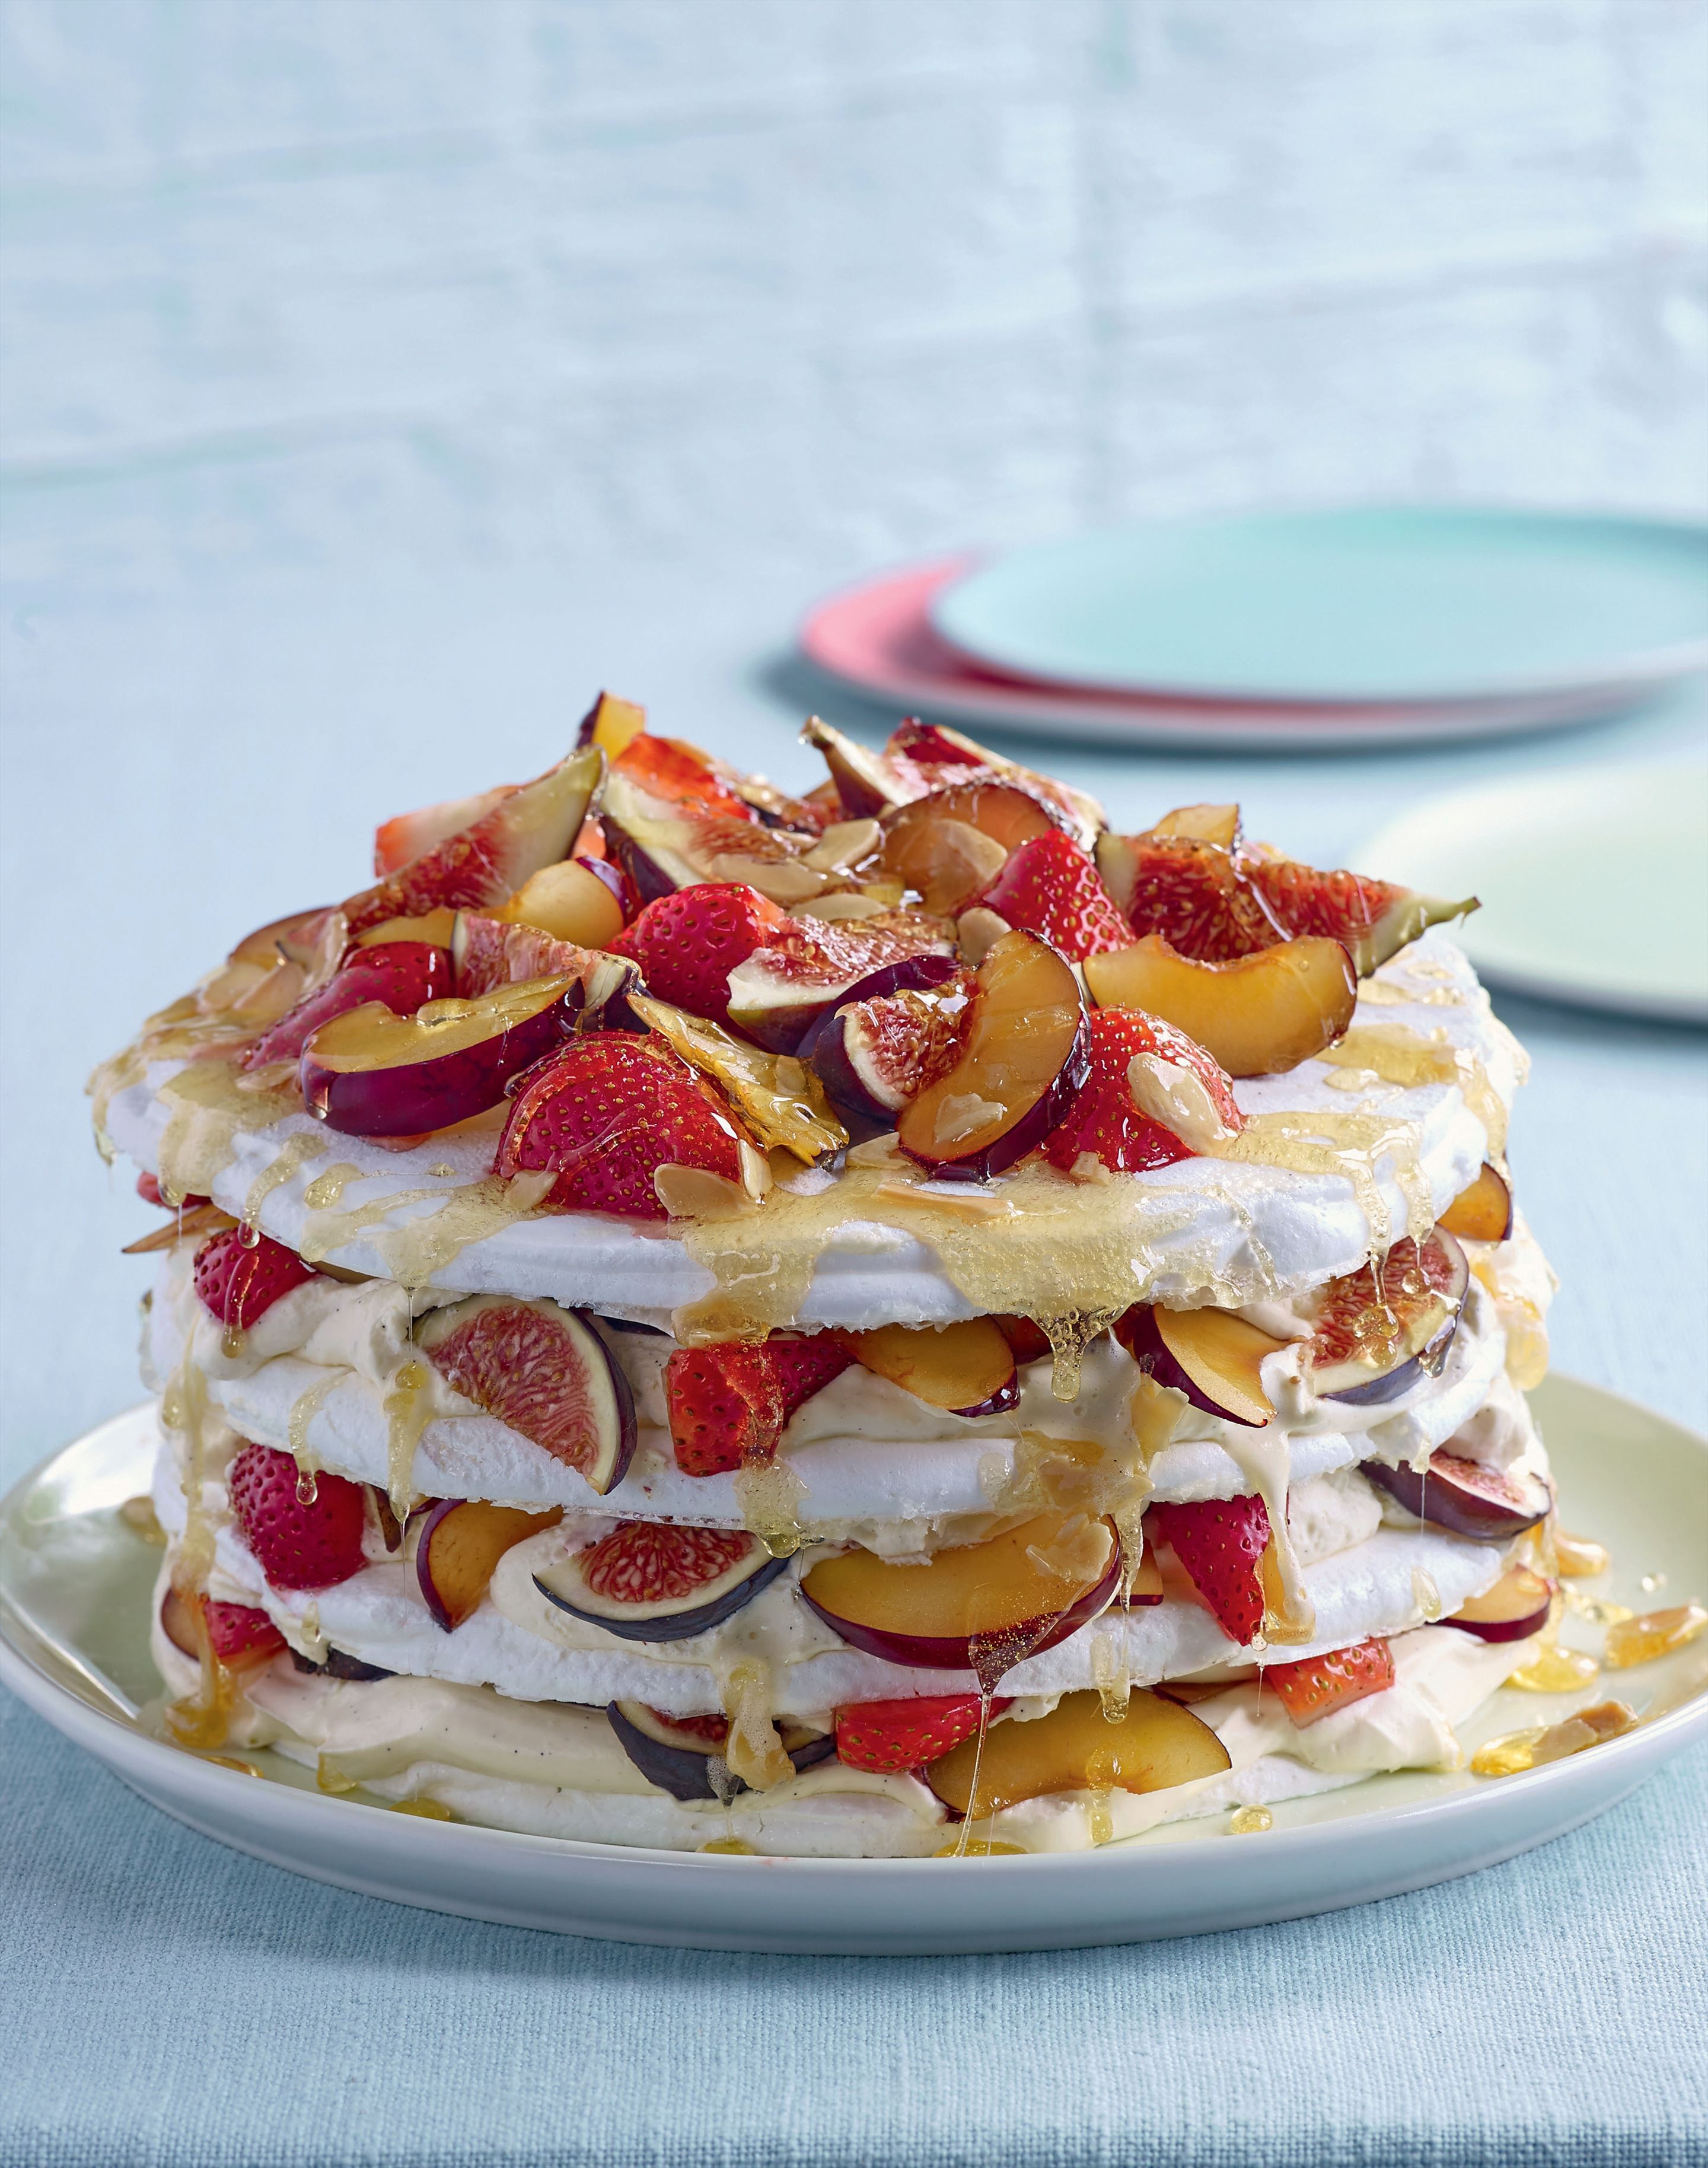 Fruit meringue gateau